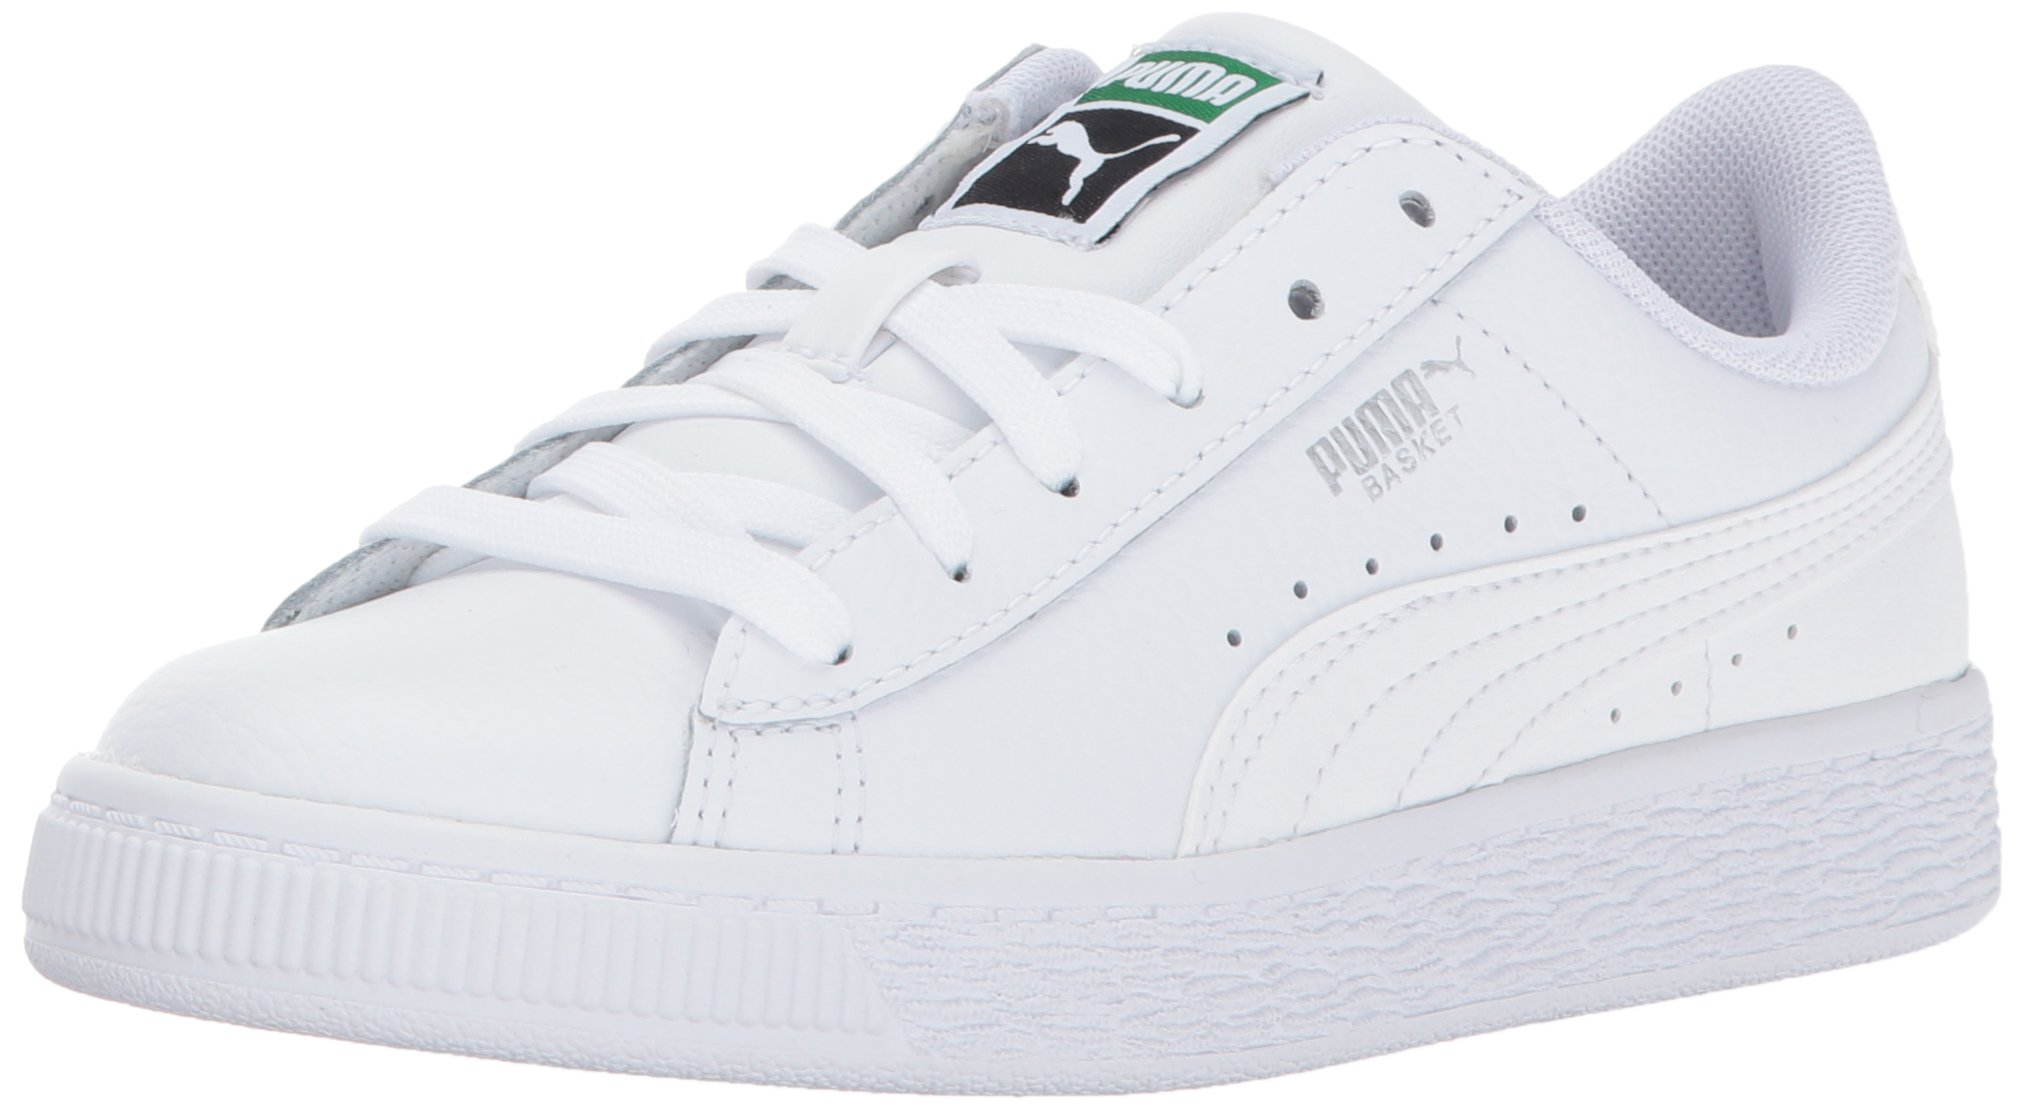 Buy PUMA Kids Basket Classic LFS Sneaker in Cheap Price on